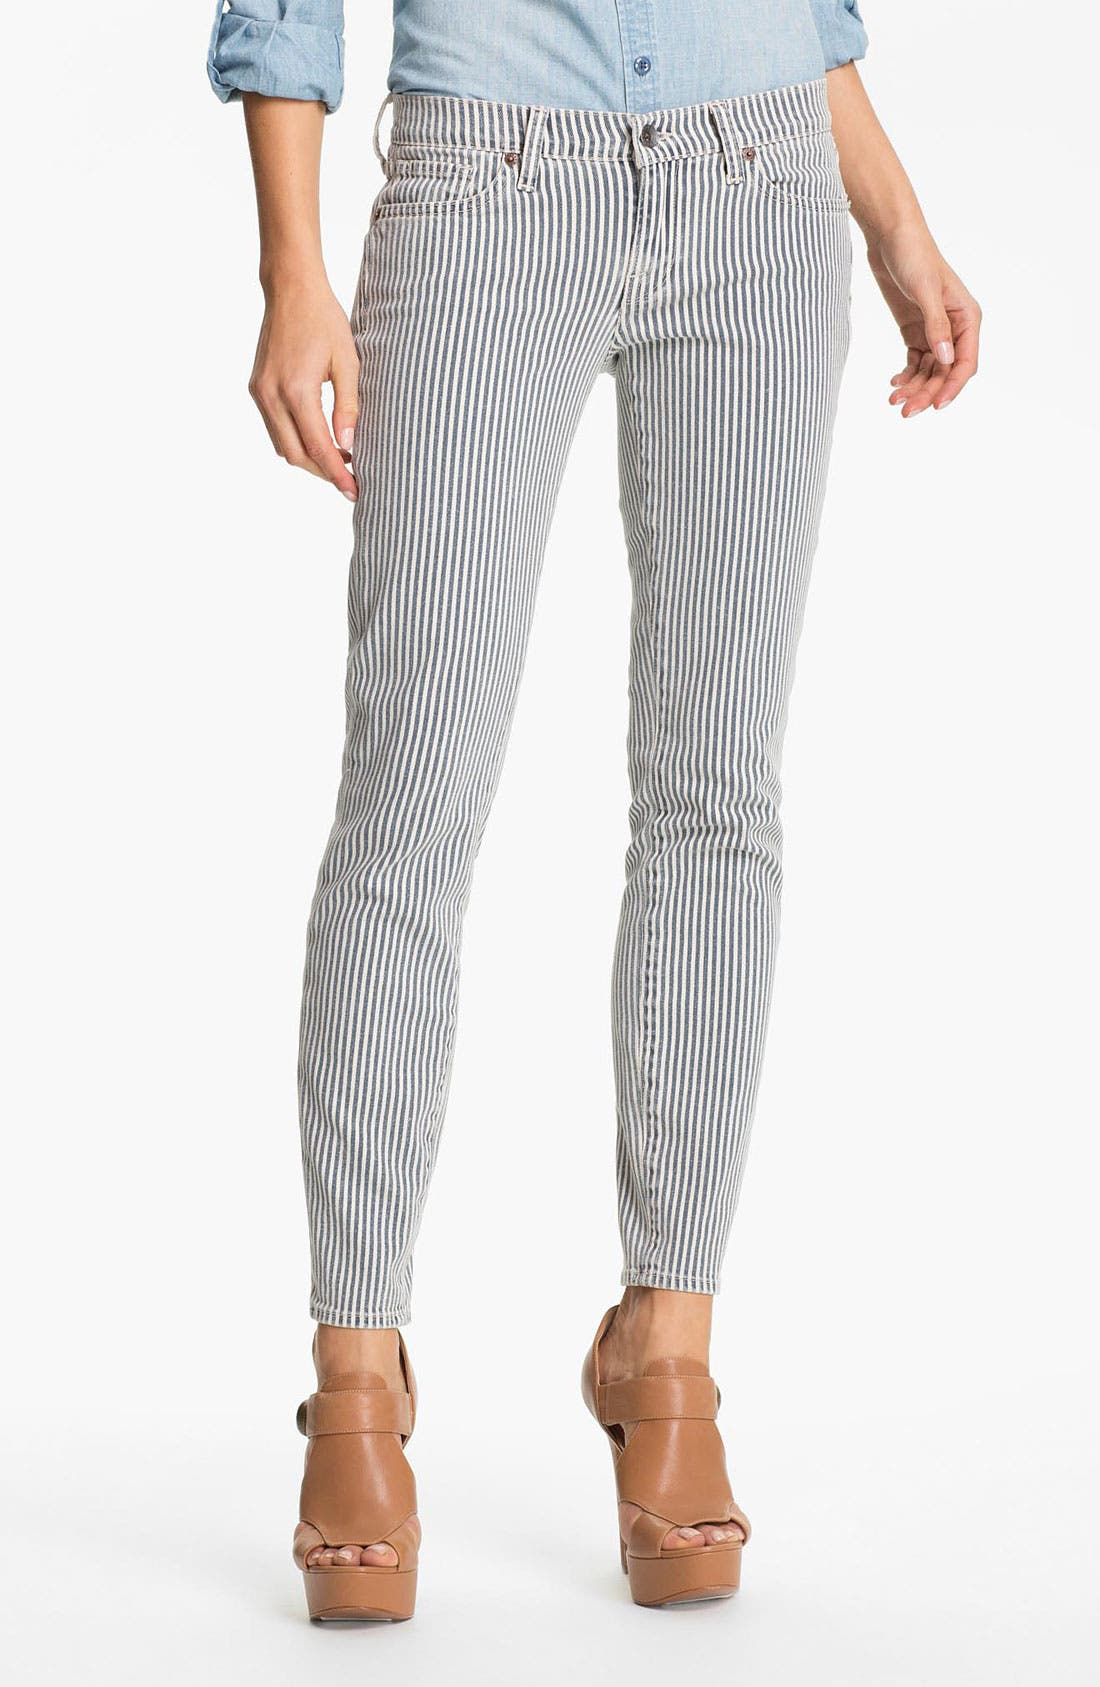 Alternate Image 1 Selected - Lucky Brand 'Charlie' Stripe Skinny Jeans